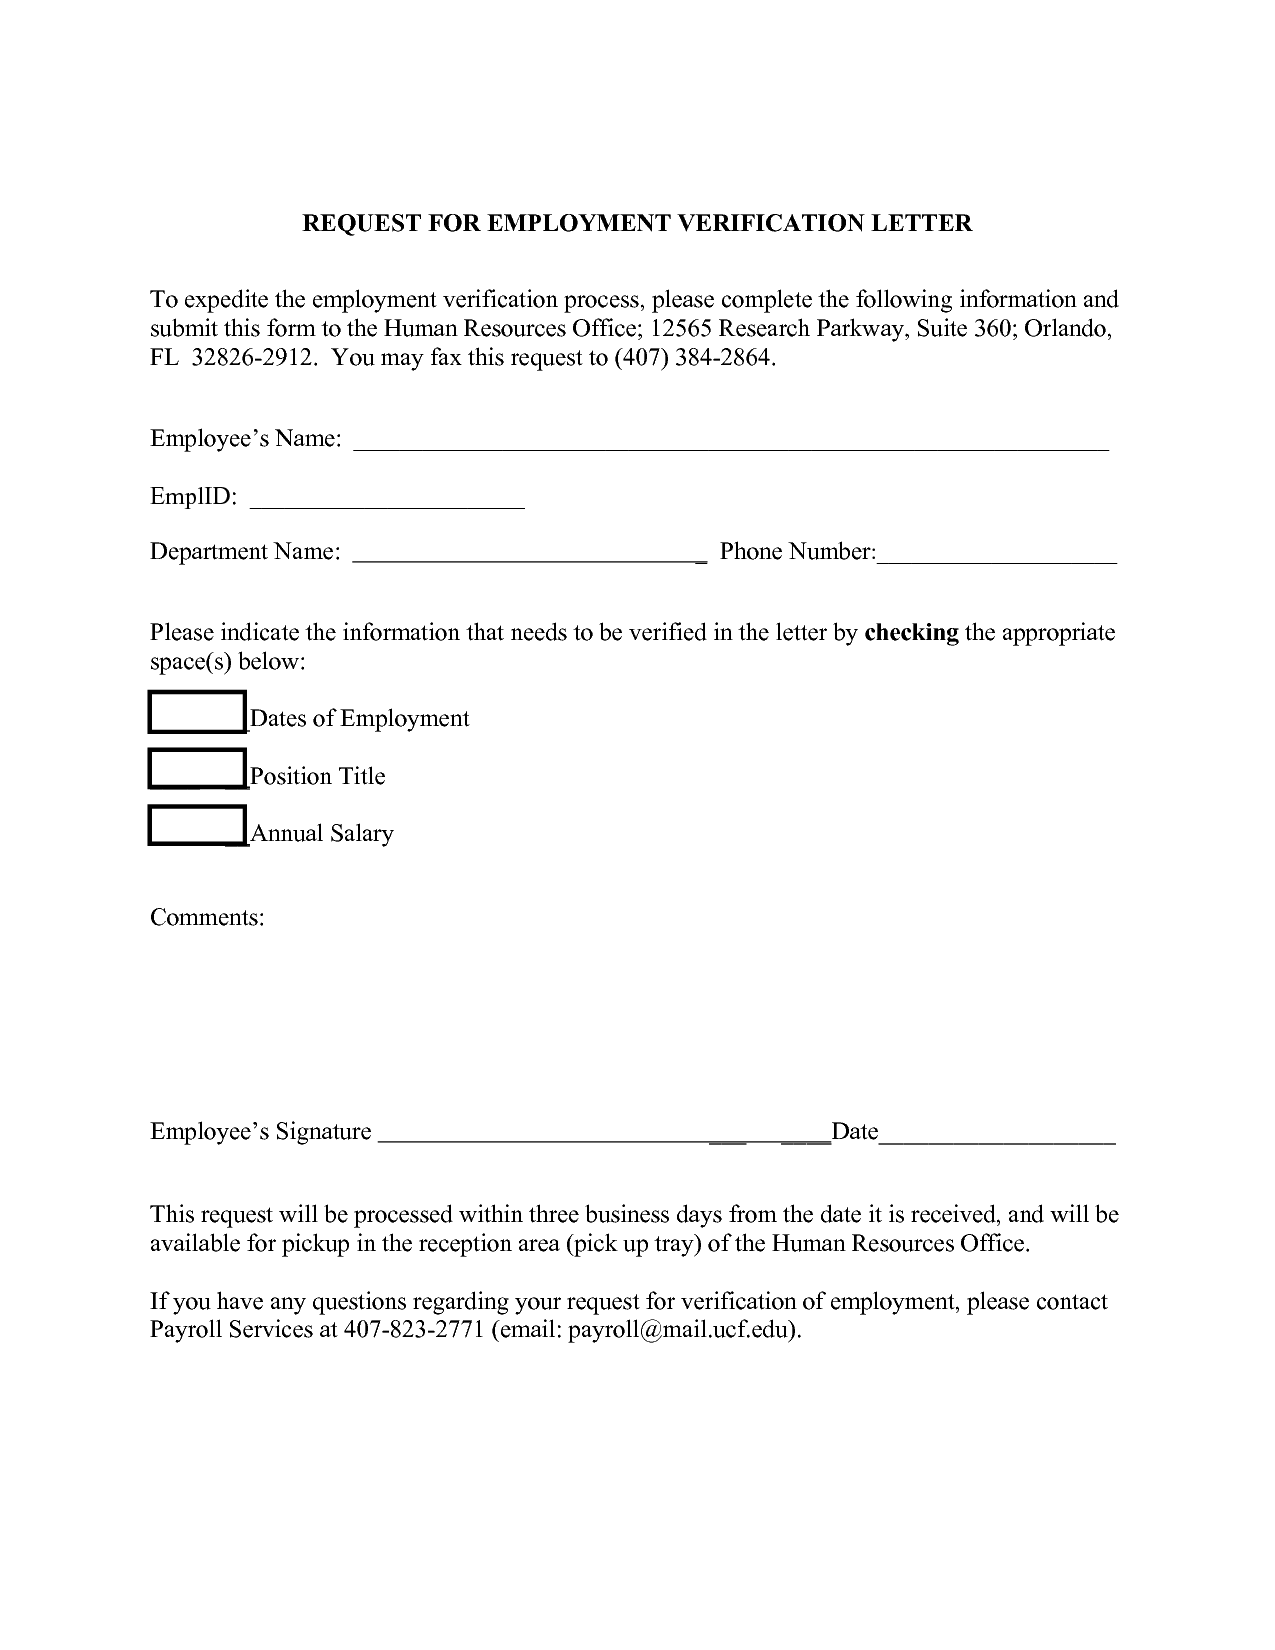 Employment Verification Letter Form Template